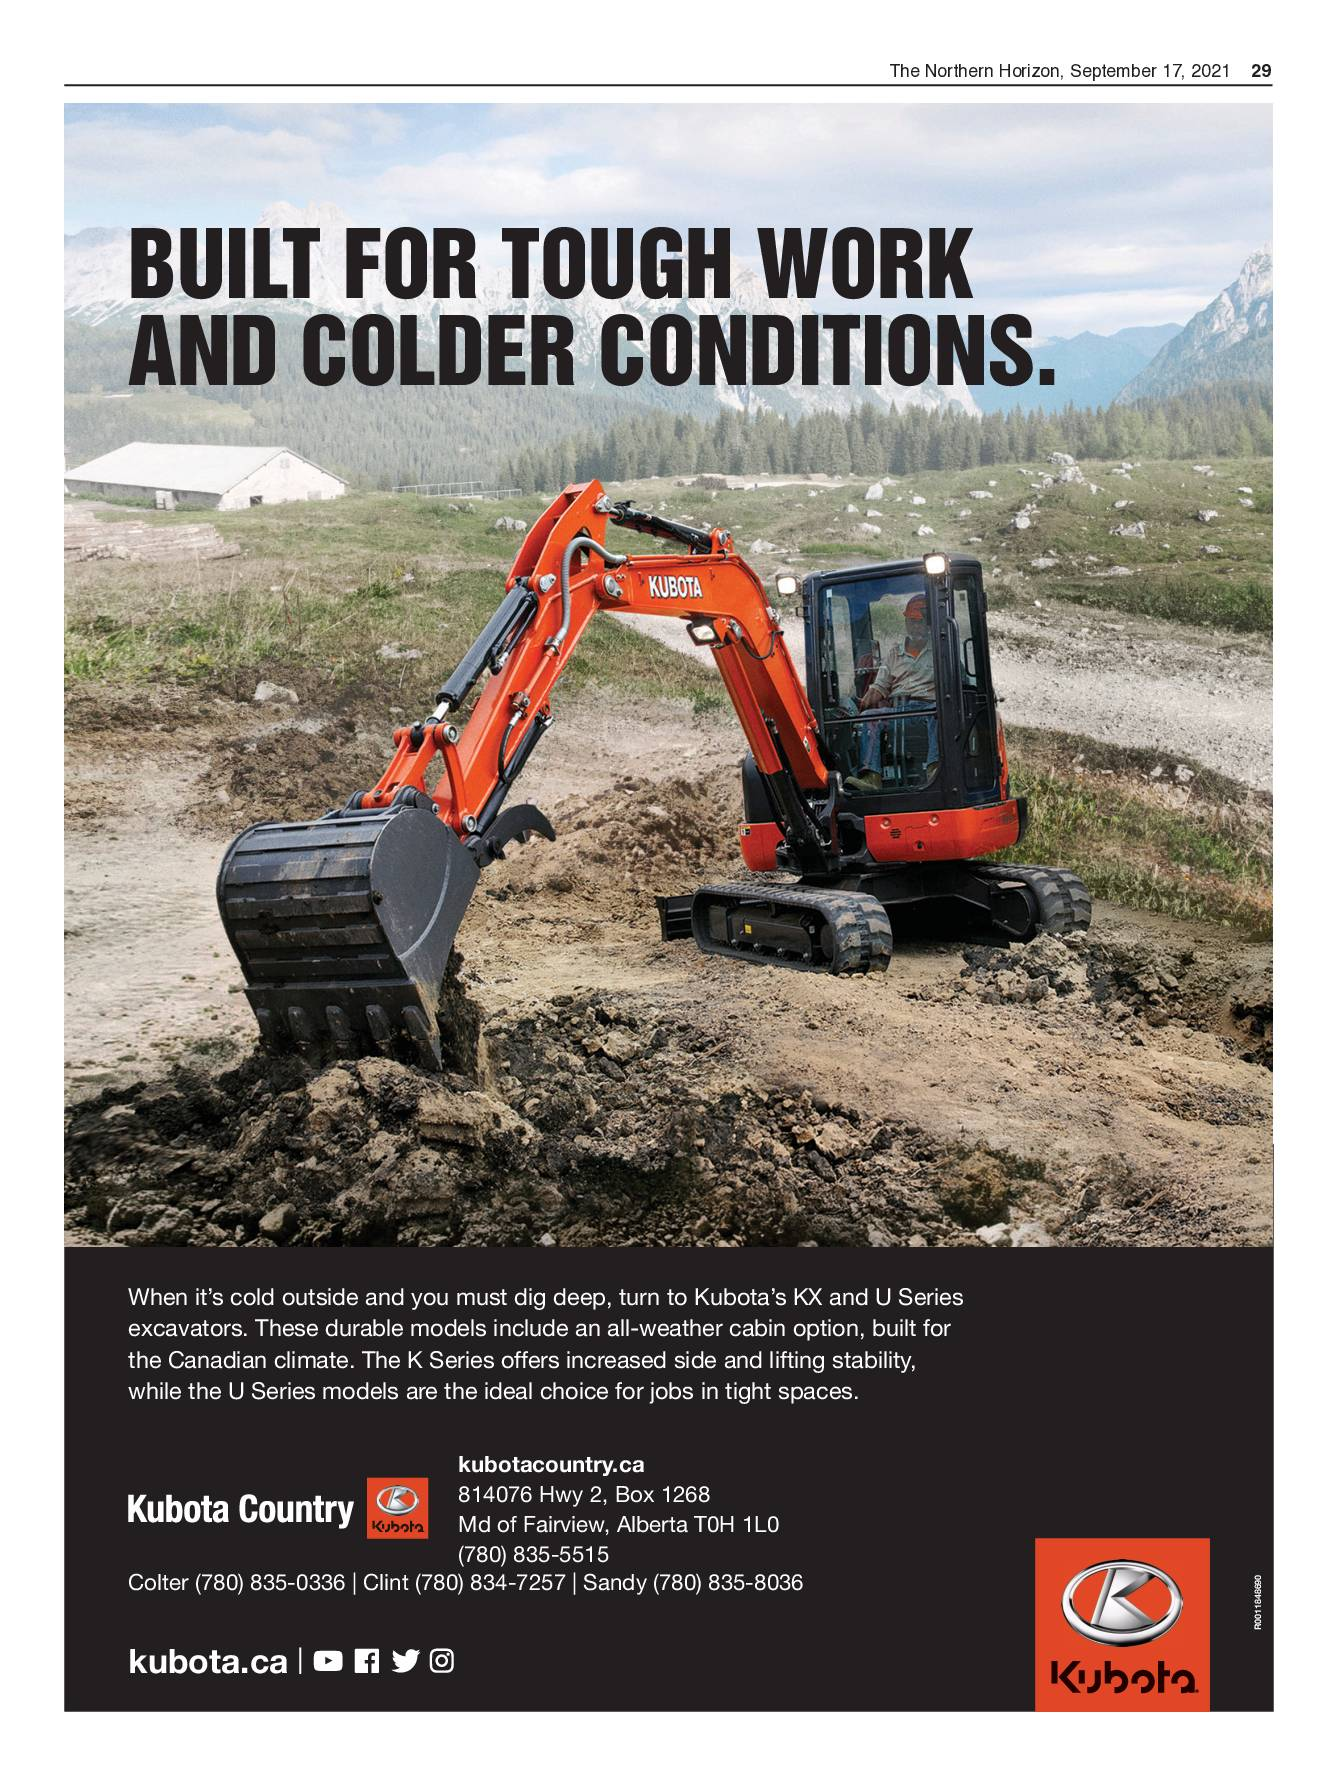 Built for Tough Work and Colder Conditions